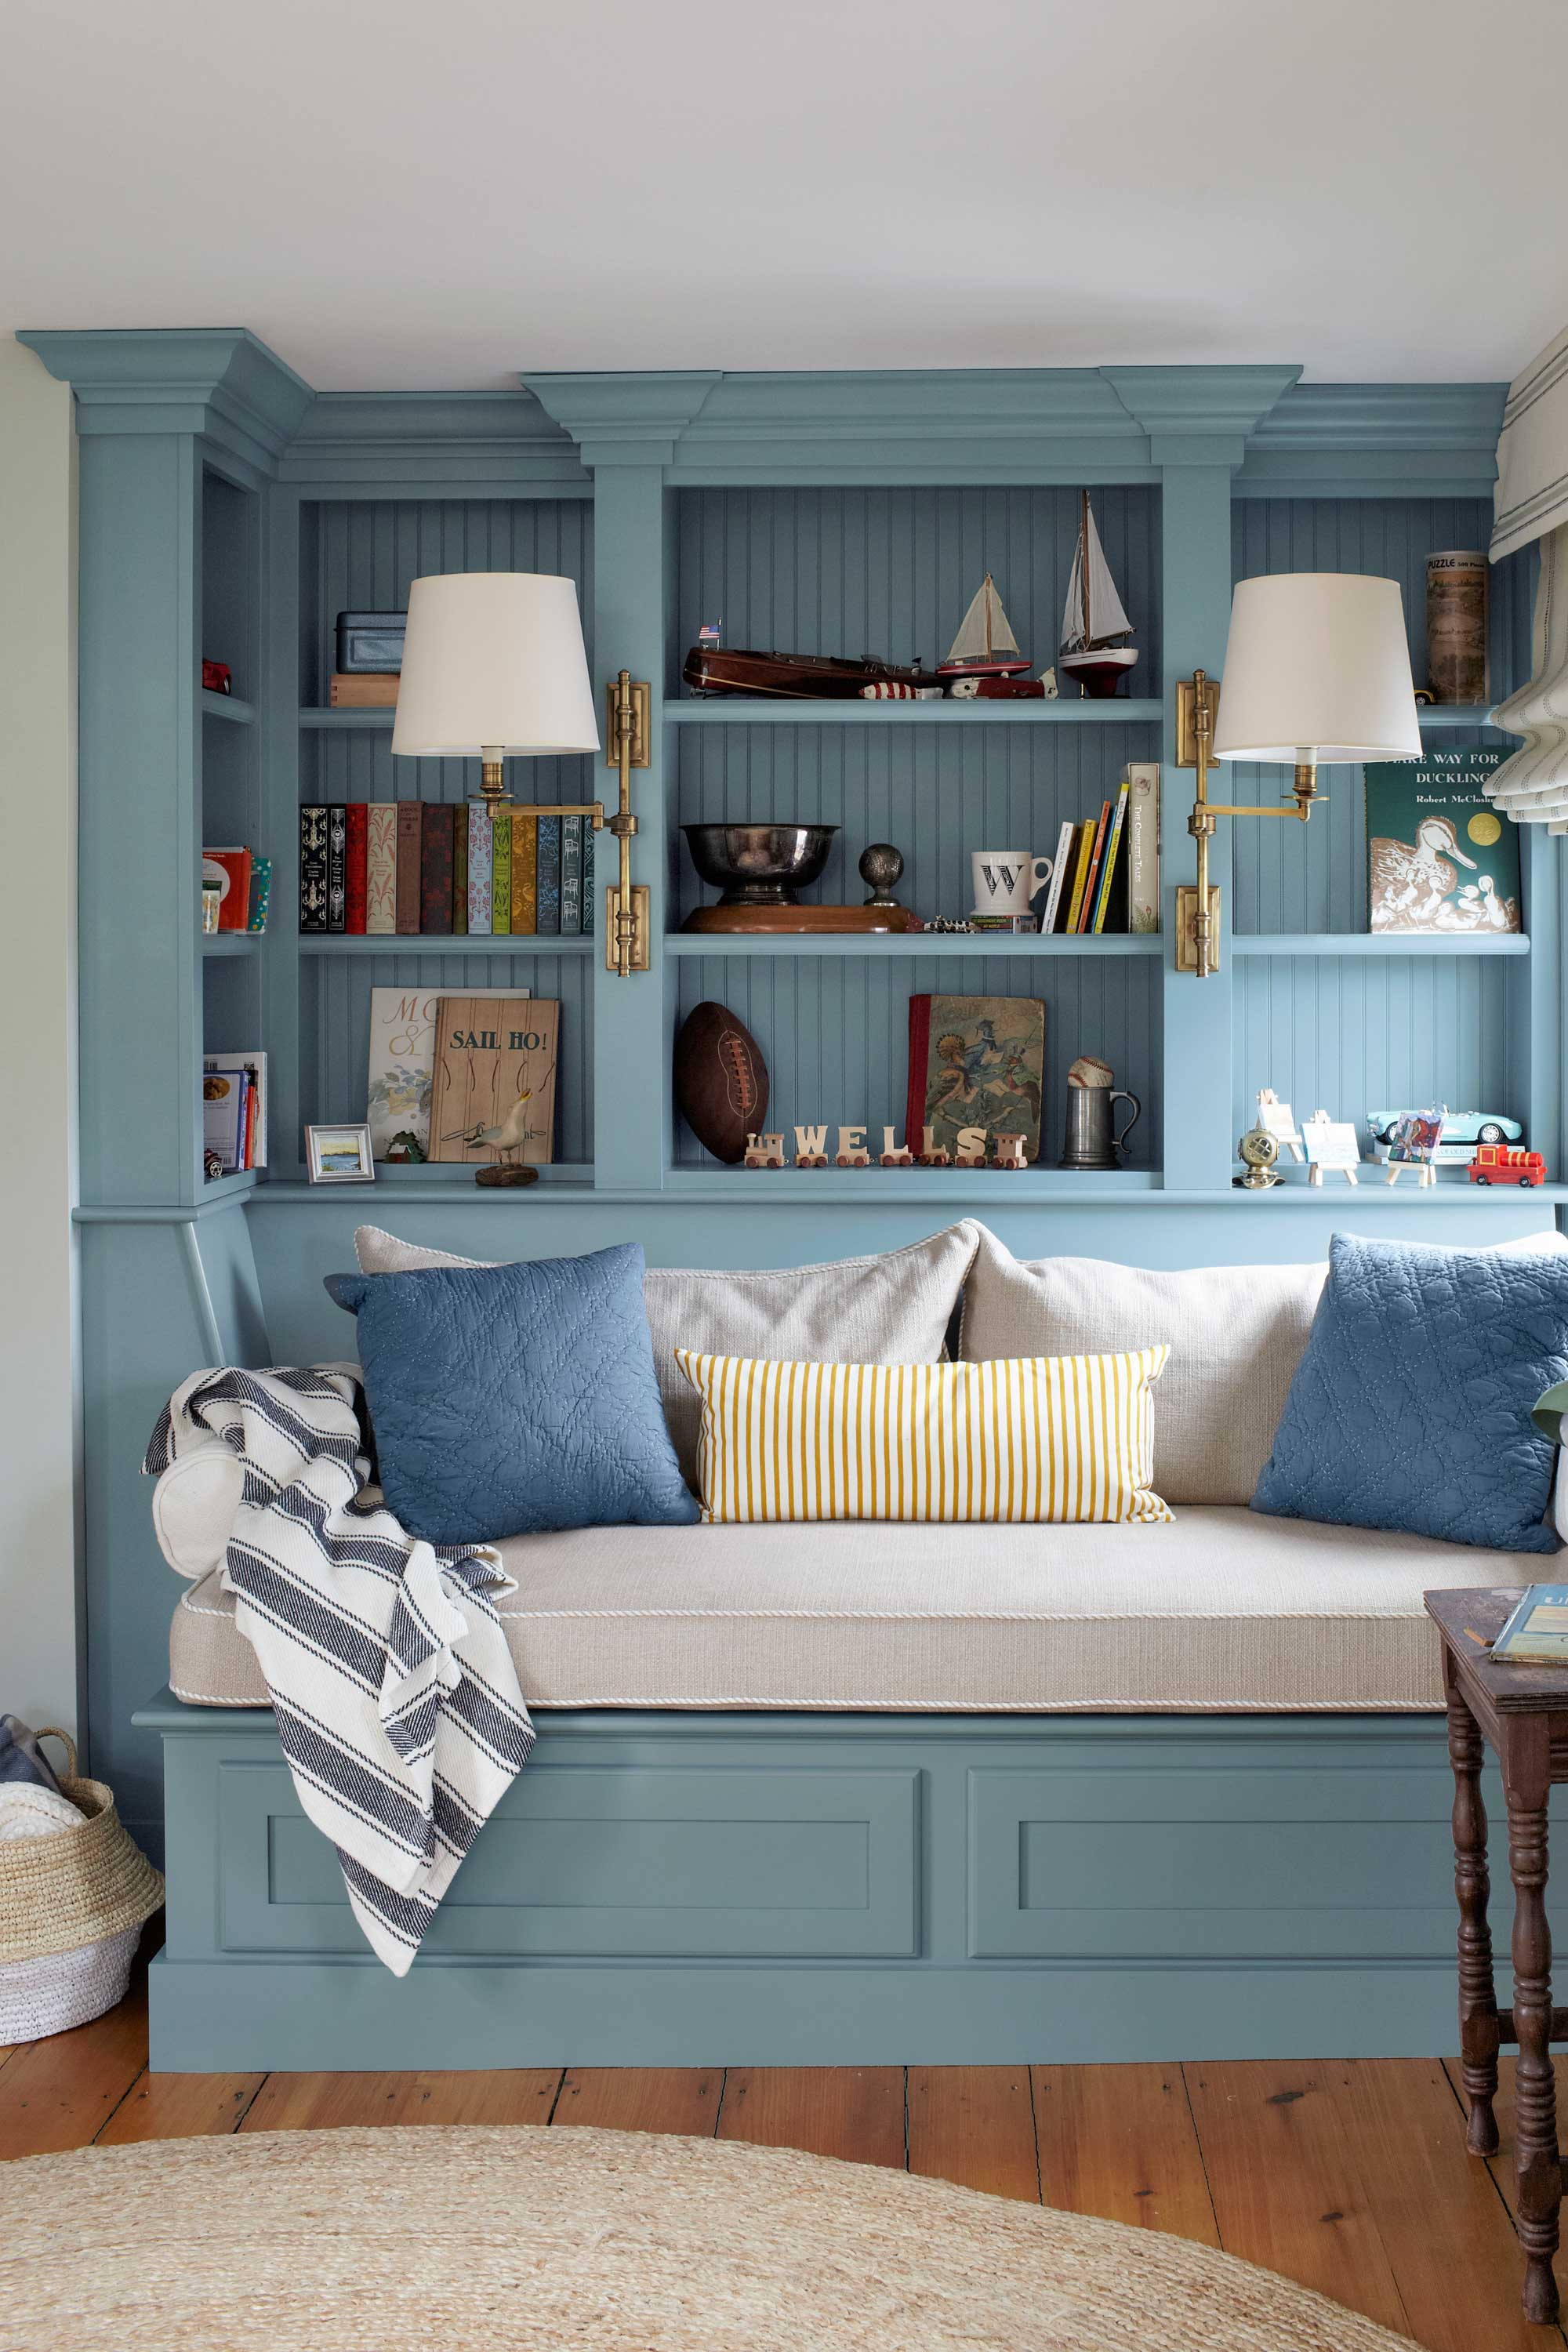 15 Paint Colors for Small Rooms - Painting Small Rooms